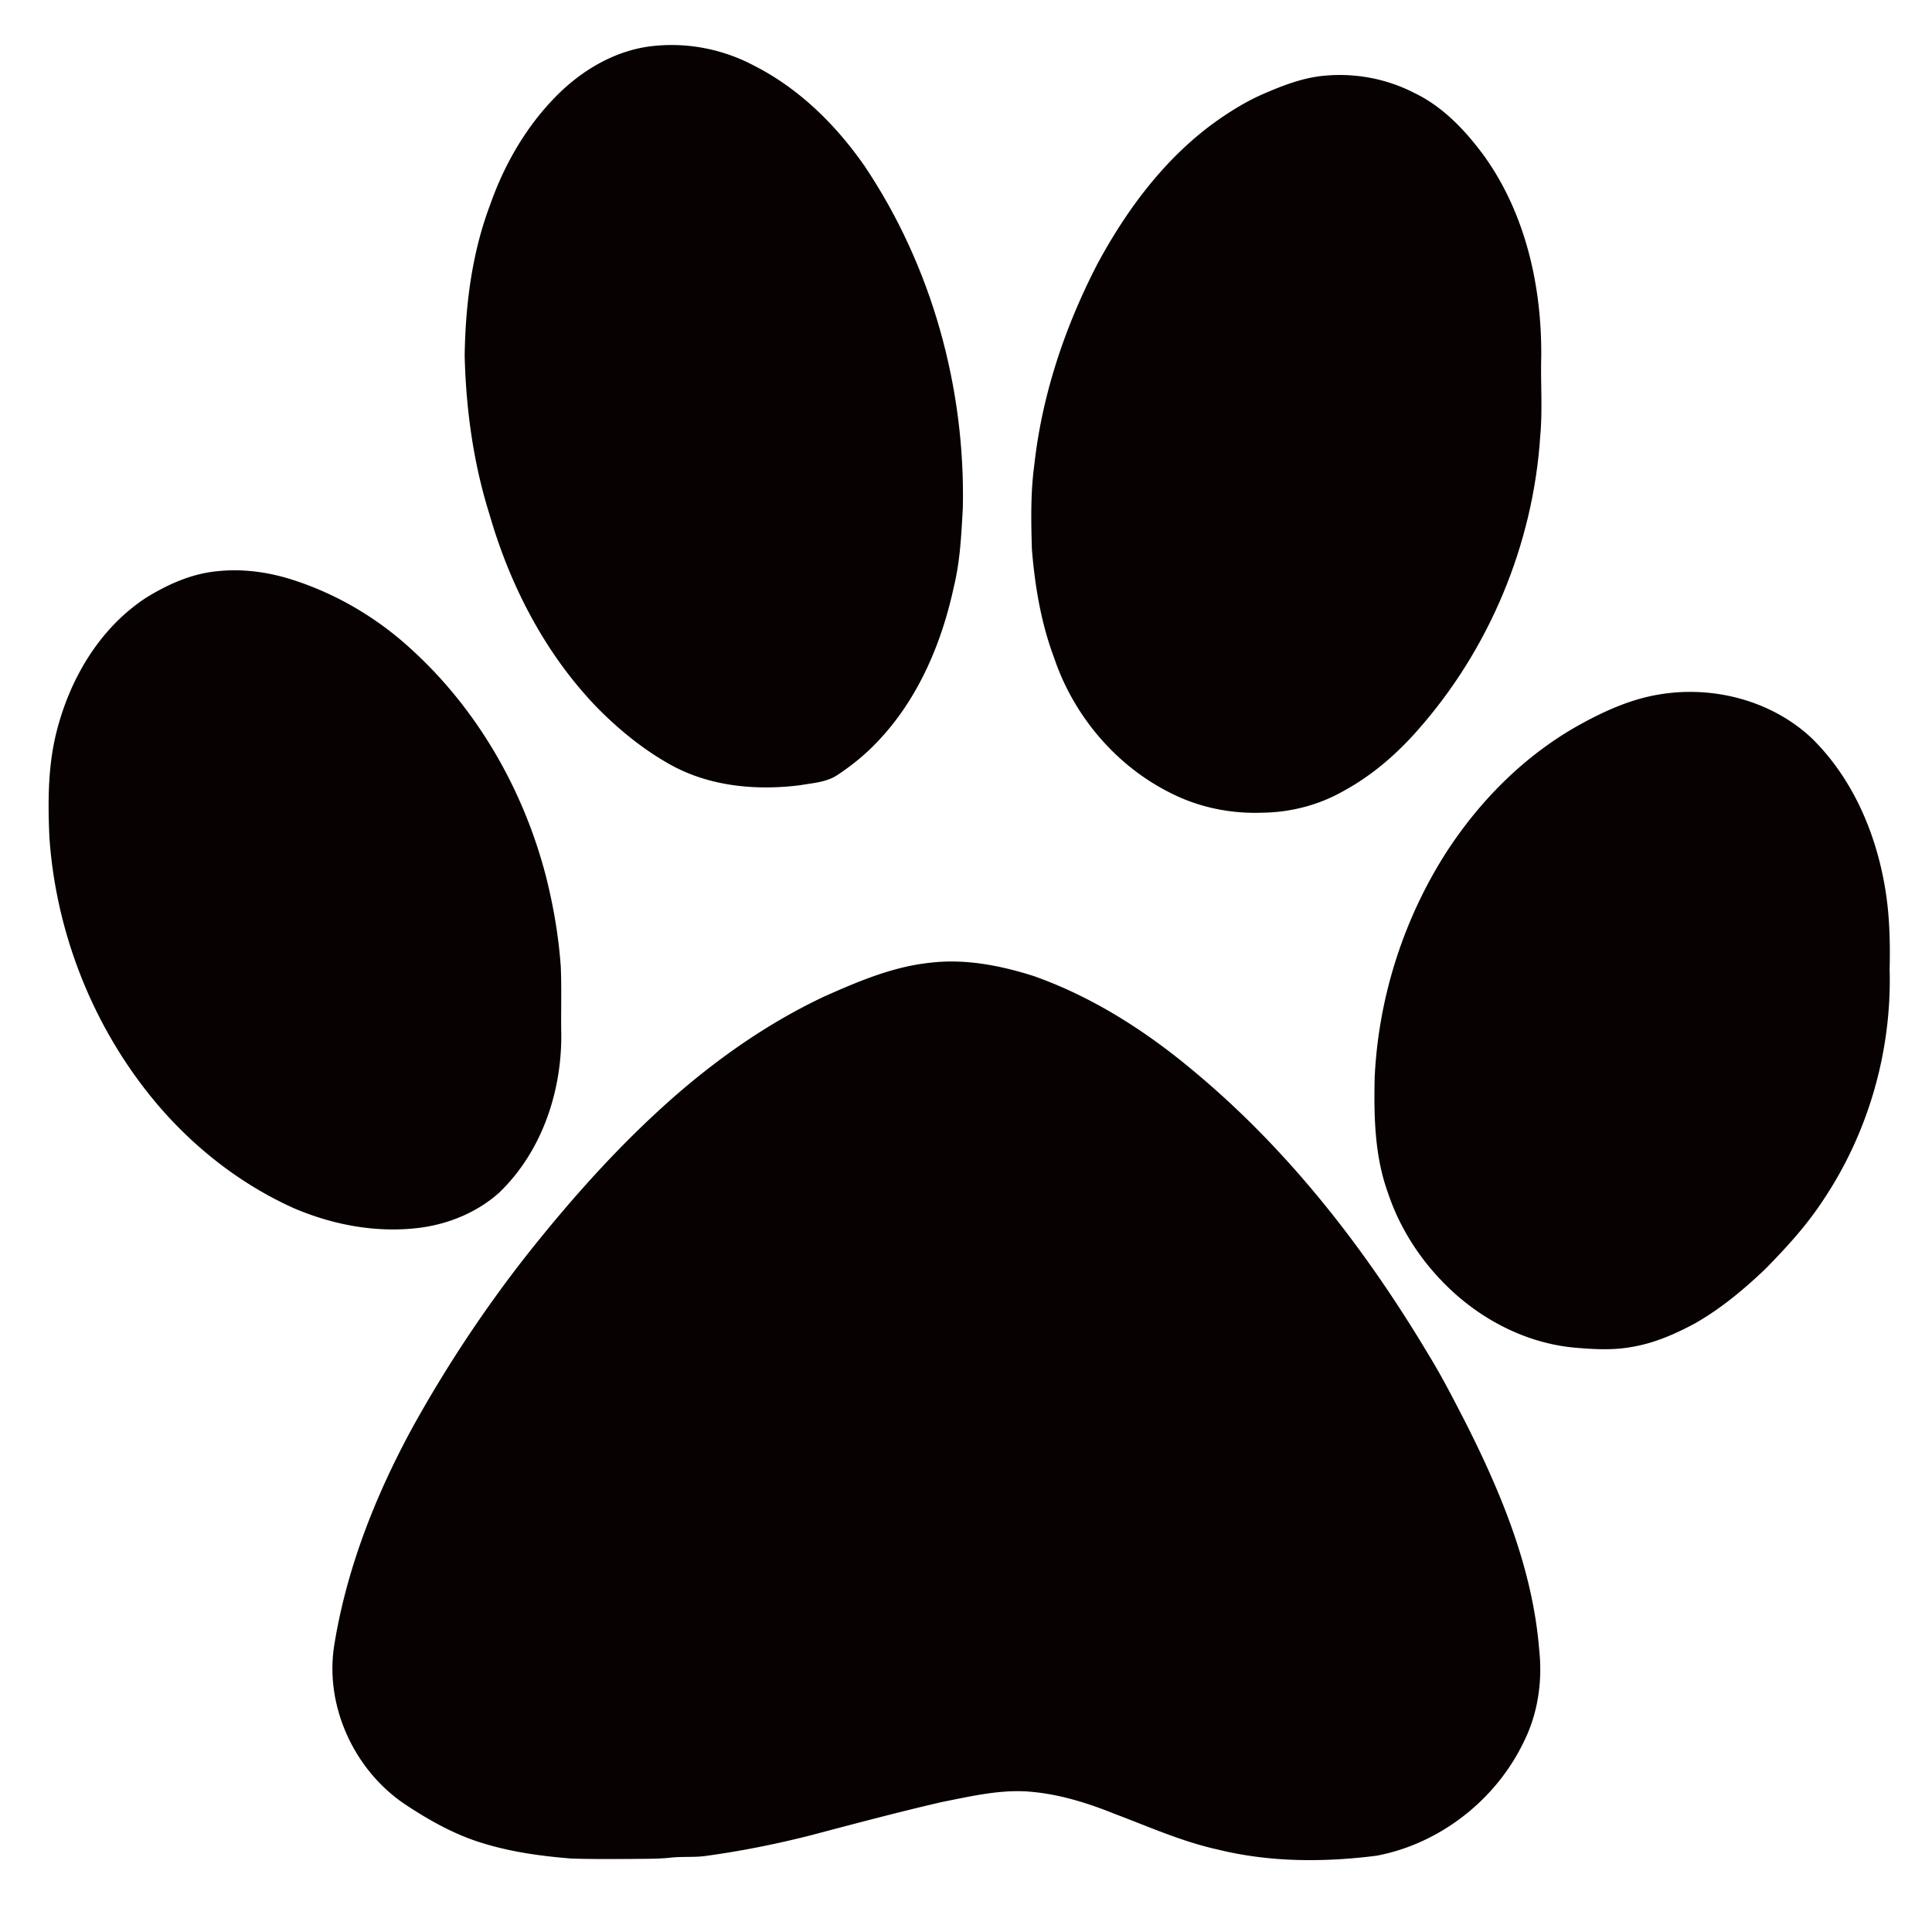 Panther paw prints clipart png. Print clip art best